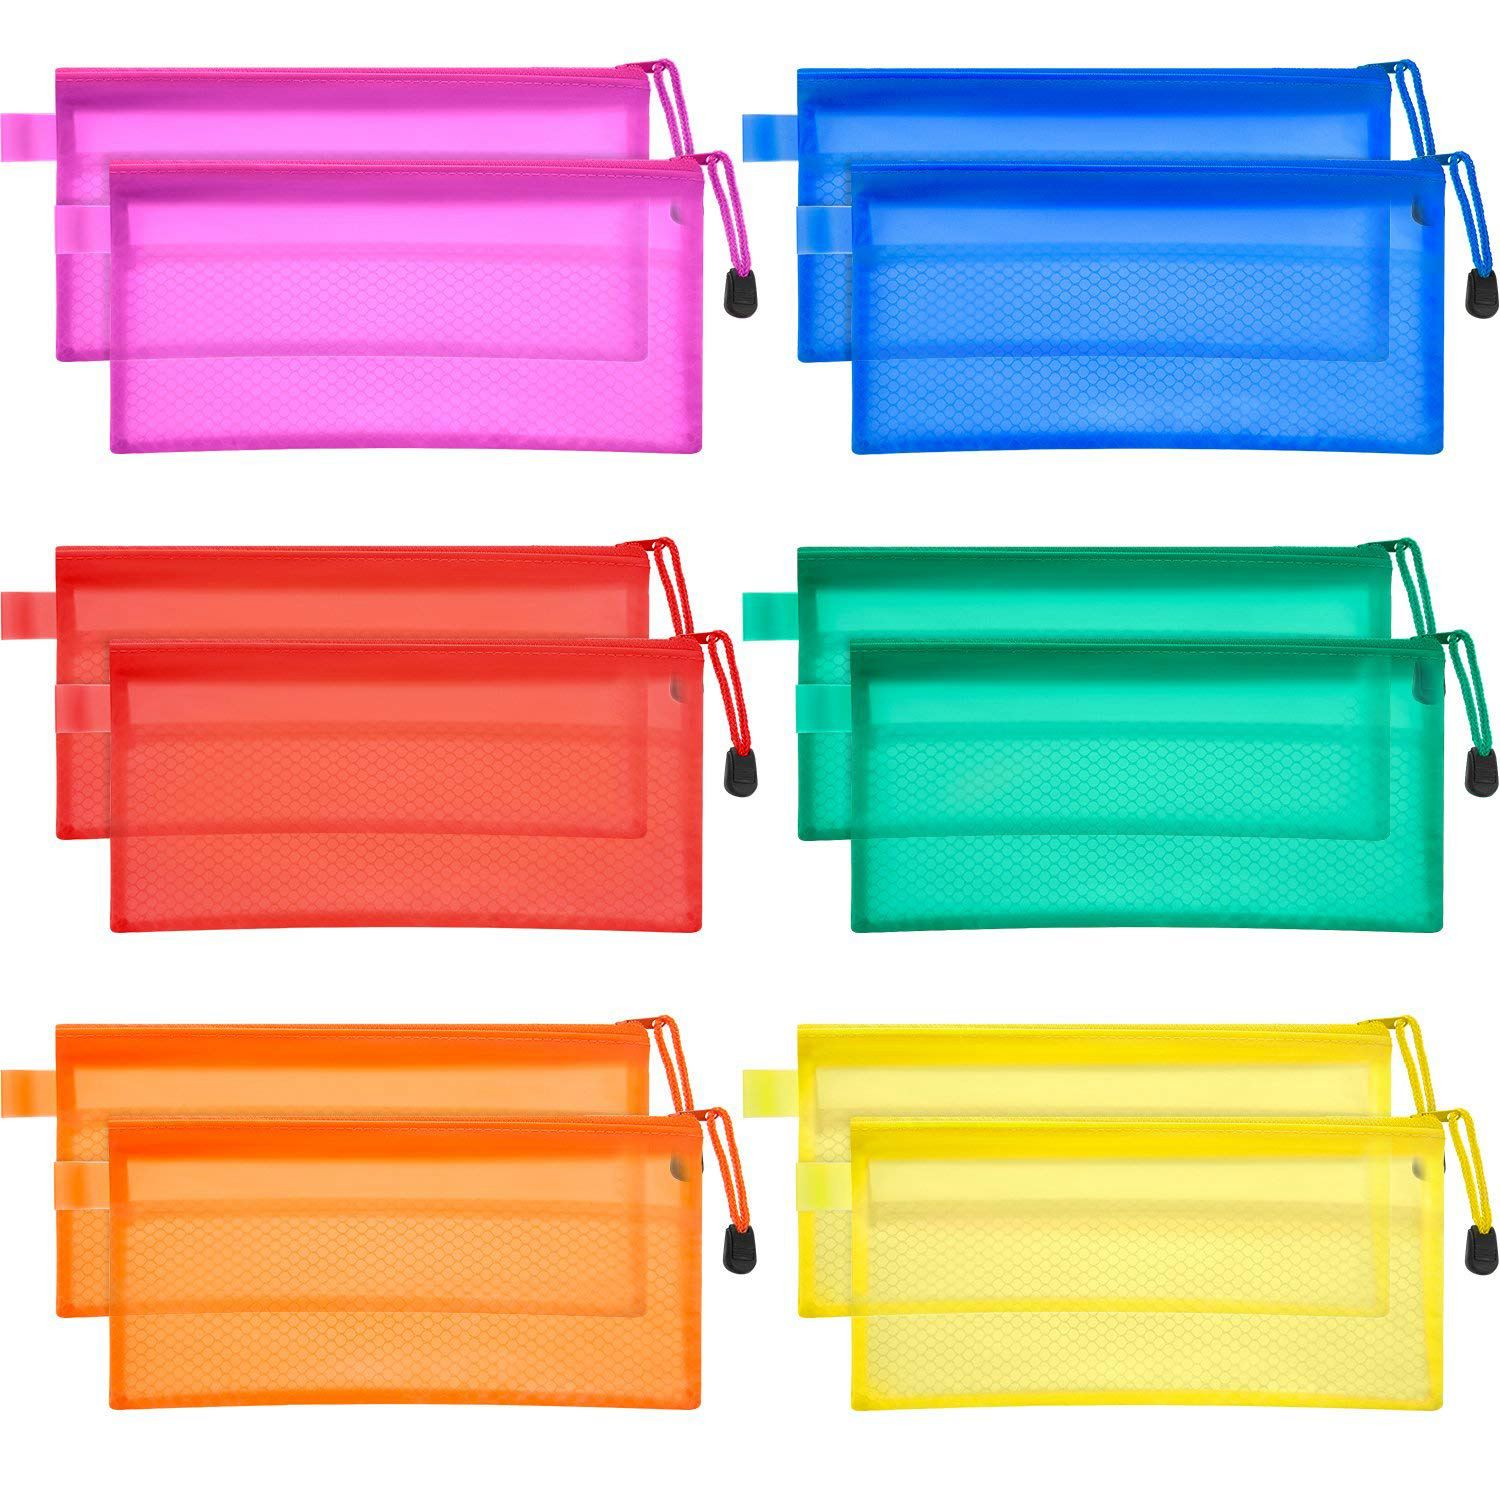 Hot-12 Pieces 6 Colors Pencil Pouch Zipper File Bags Waterproof Double Layer For Pen Bag Cosmetics Supplies Travel Accessories